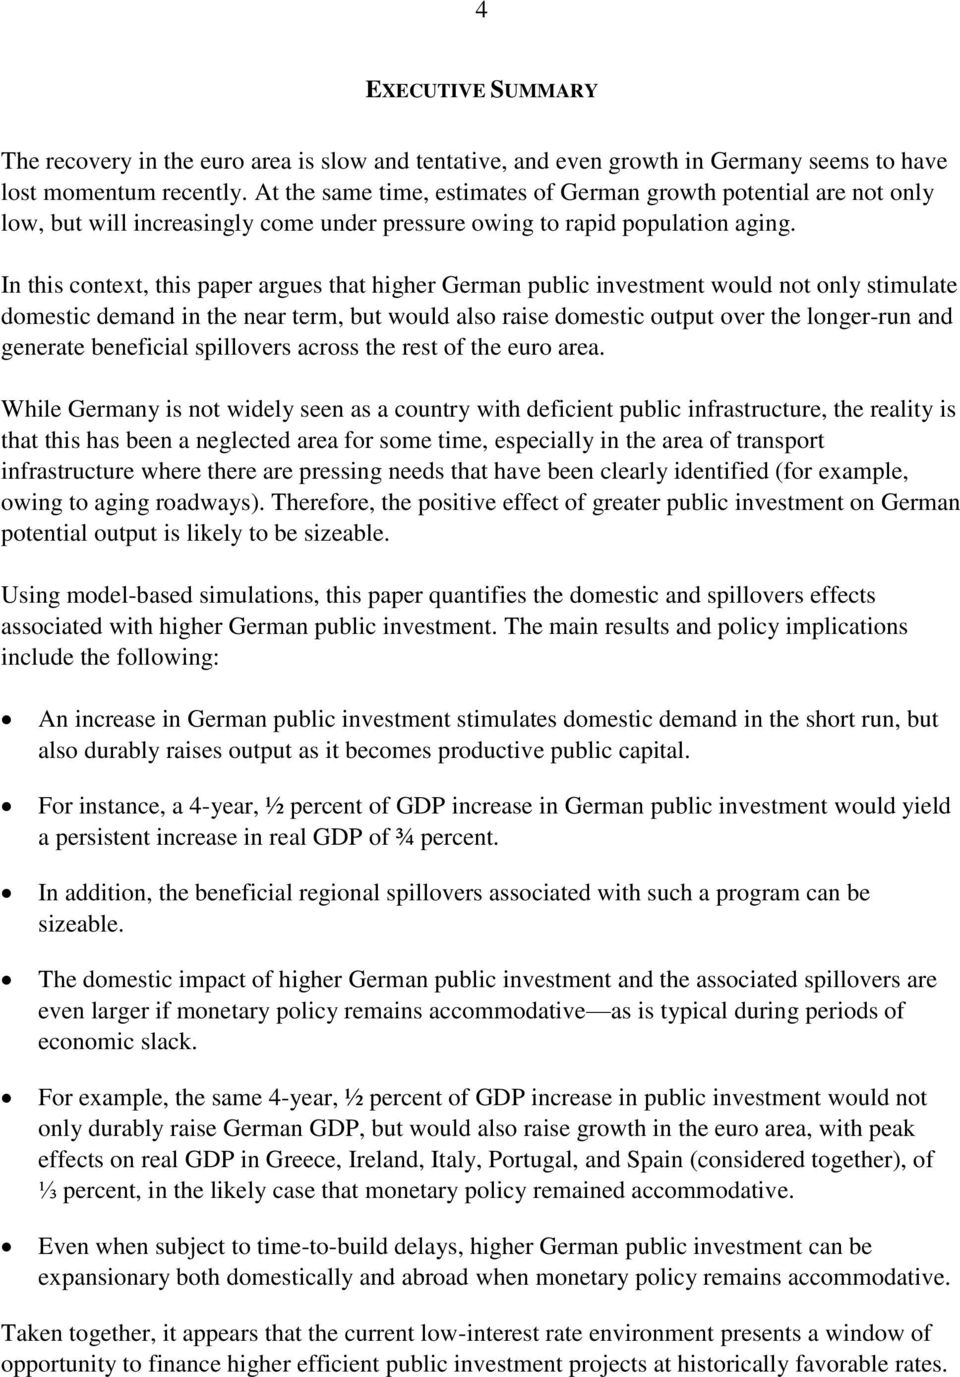 In this context, this paper argues that higher German public investment would not only stimulate domestic demand in the near term, but would also raise domestic output over the longer-run and